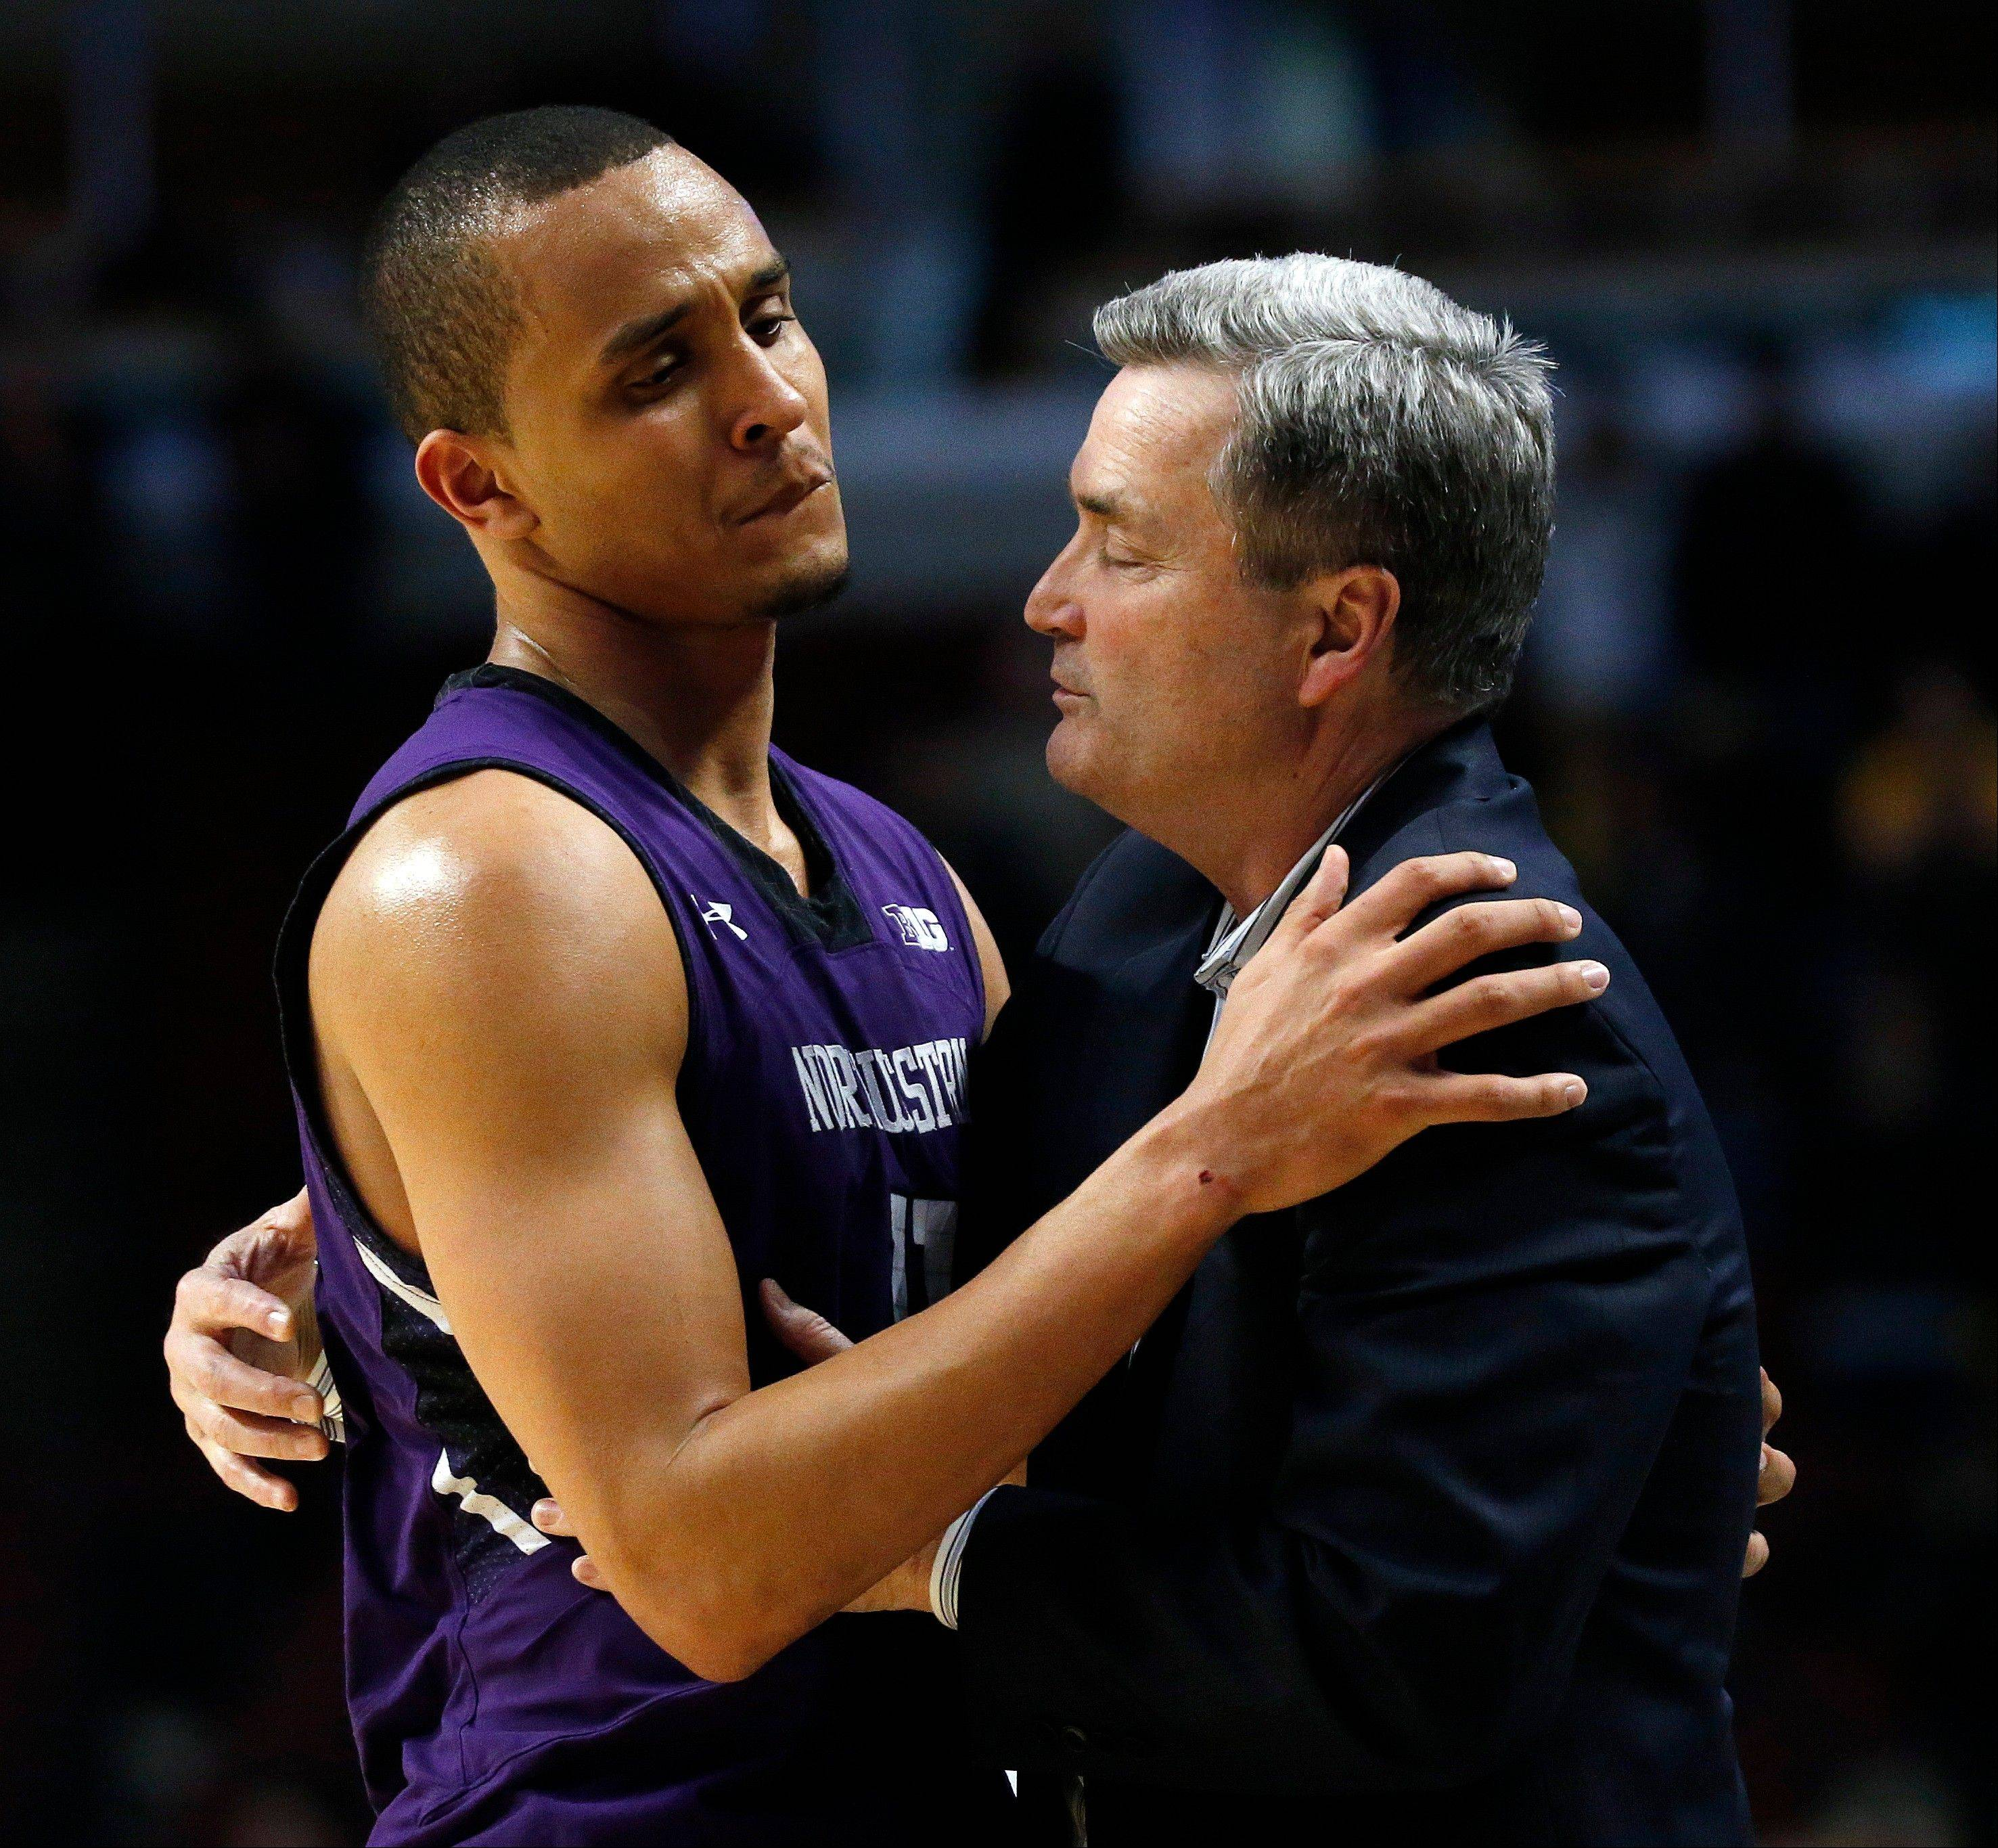 Northwestern head coach Bill Carmody hugs Reggie Hearn after an NCAA college basketball game at the Big Ten tournament against Iowa Thursday, March 14, 2013, in Chicago. Iowa won 73-59. (AP Photo/Charles Rex Arbogast)